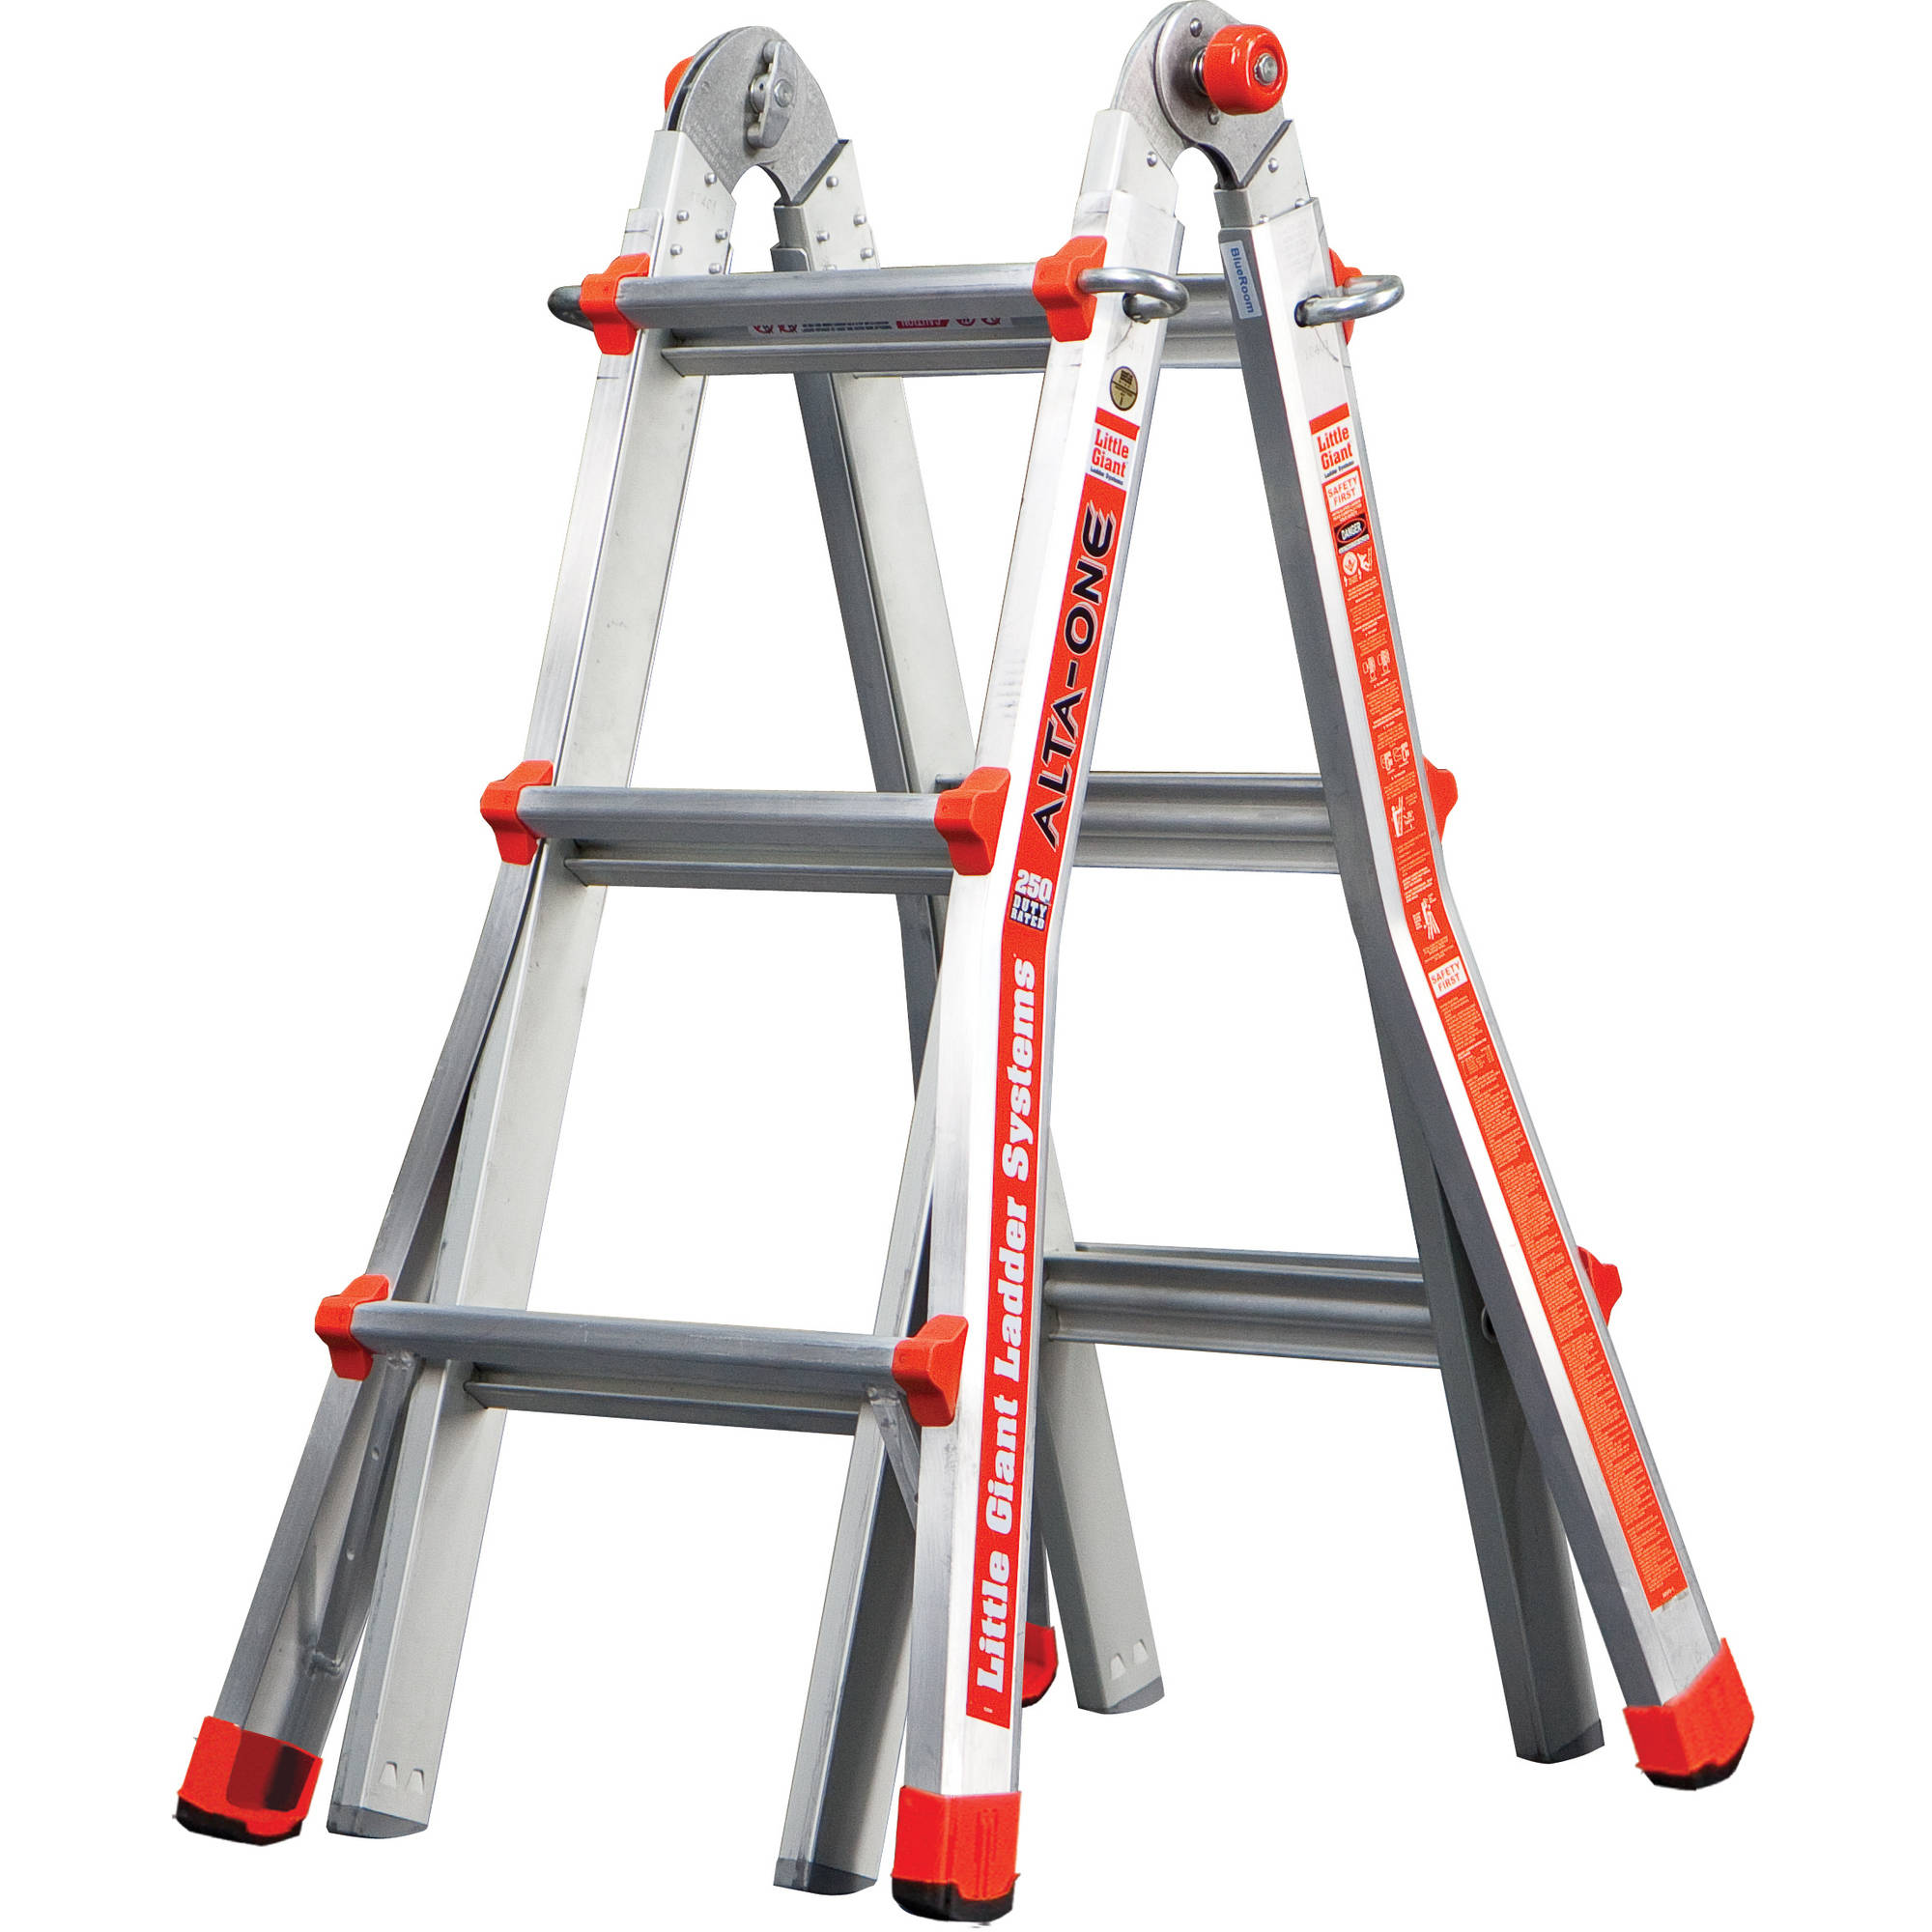 Little Giant Alta One Type 1 Model 13' Ladder